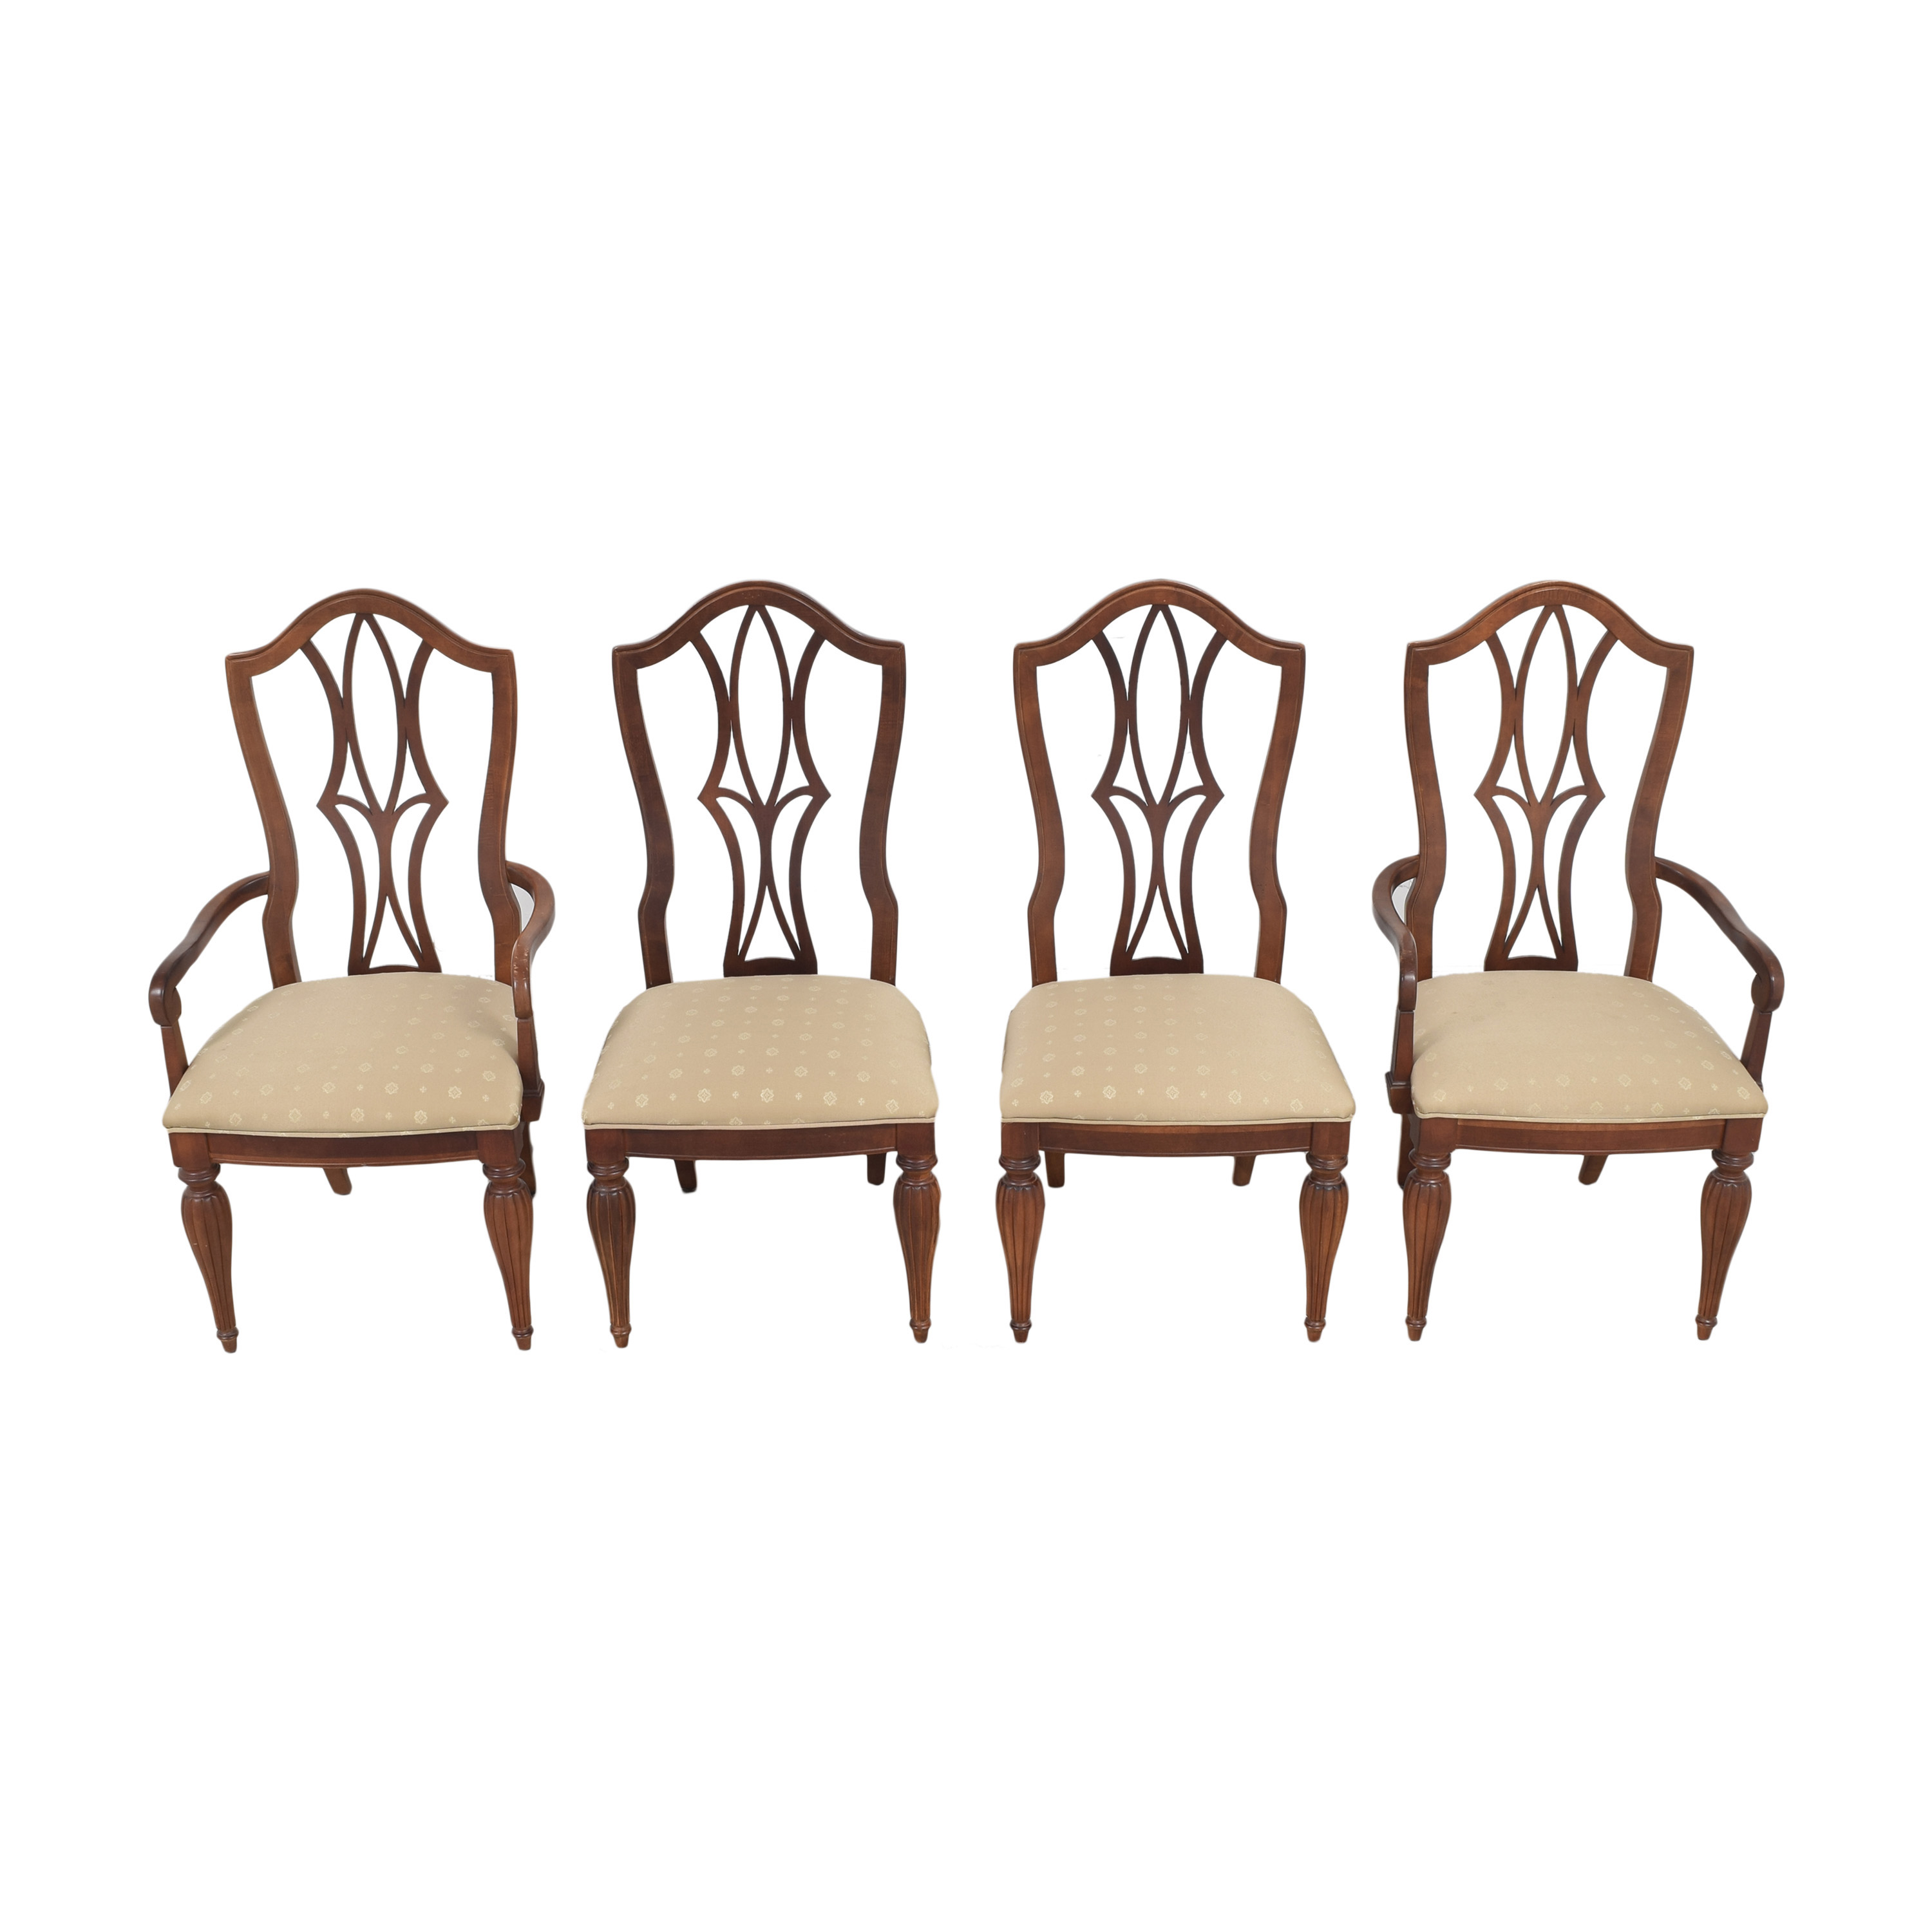 Stanley Furniture Stanley Furniture Upholstered Dining Chairs discount